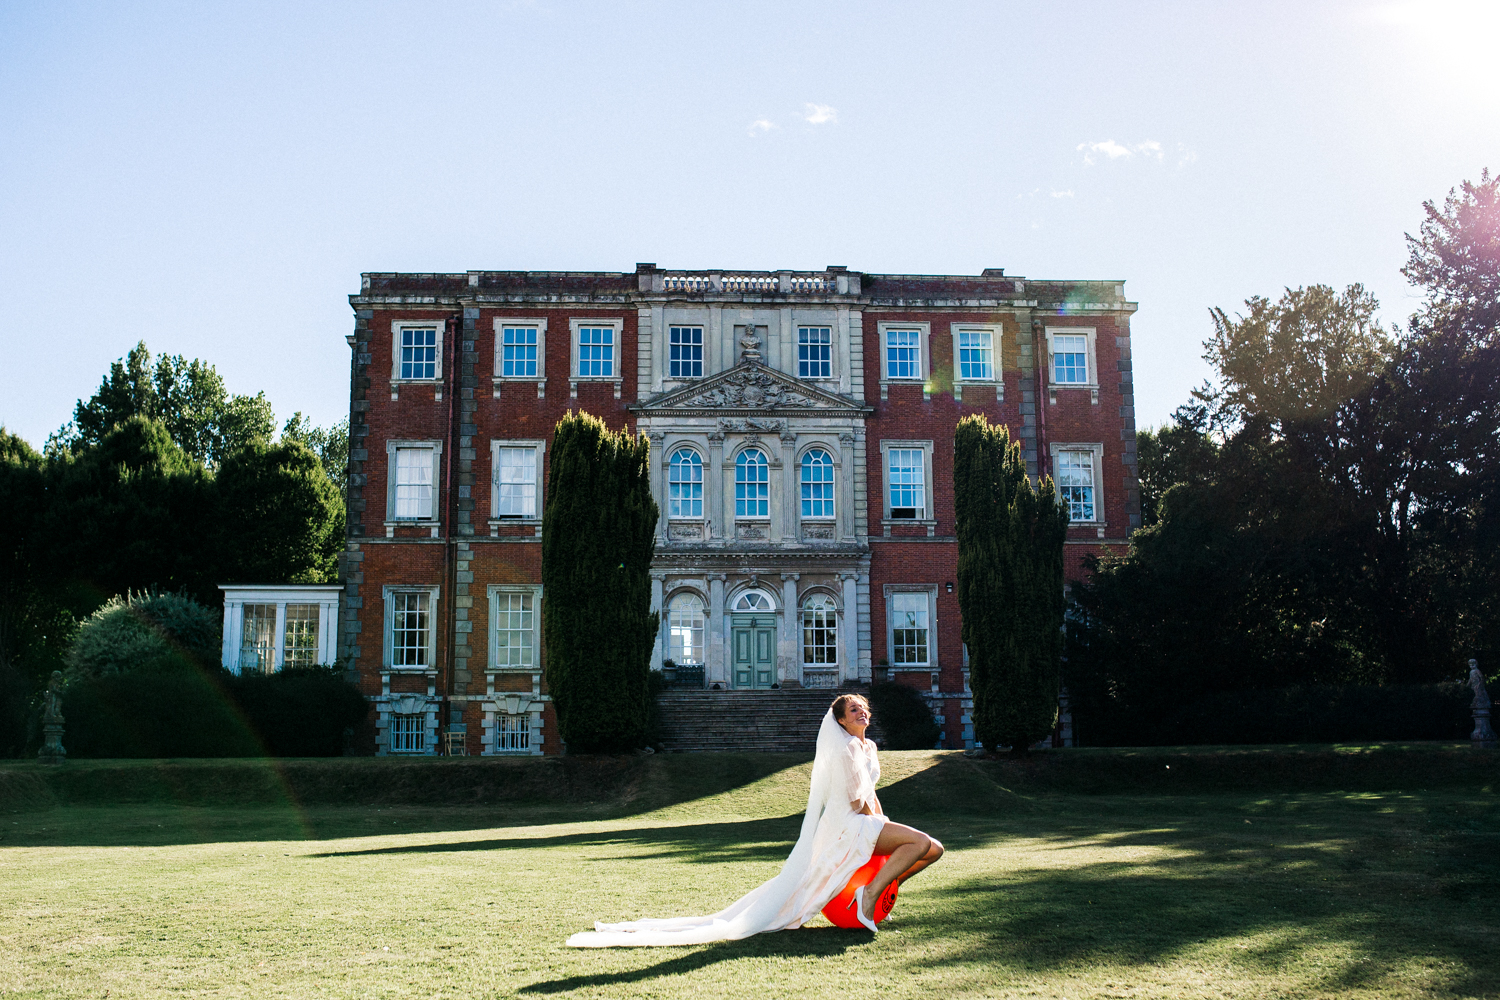 a bride hops across the lawn on an orange spacehopper in front of a county house